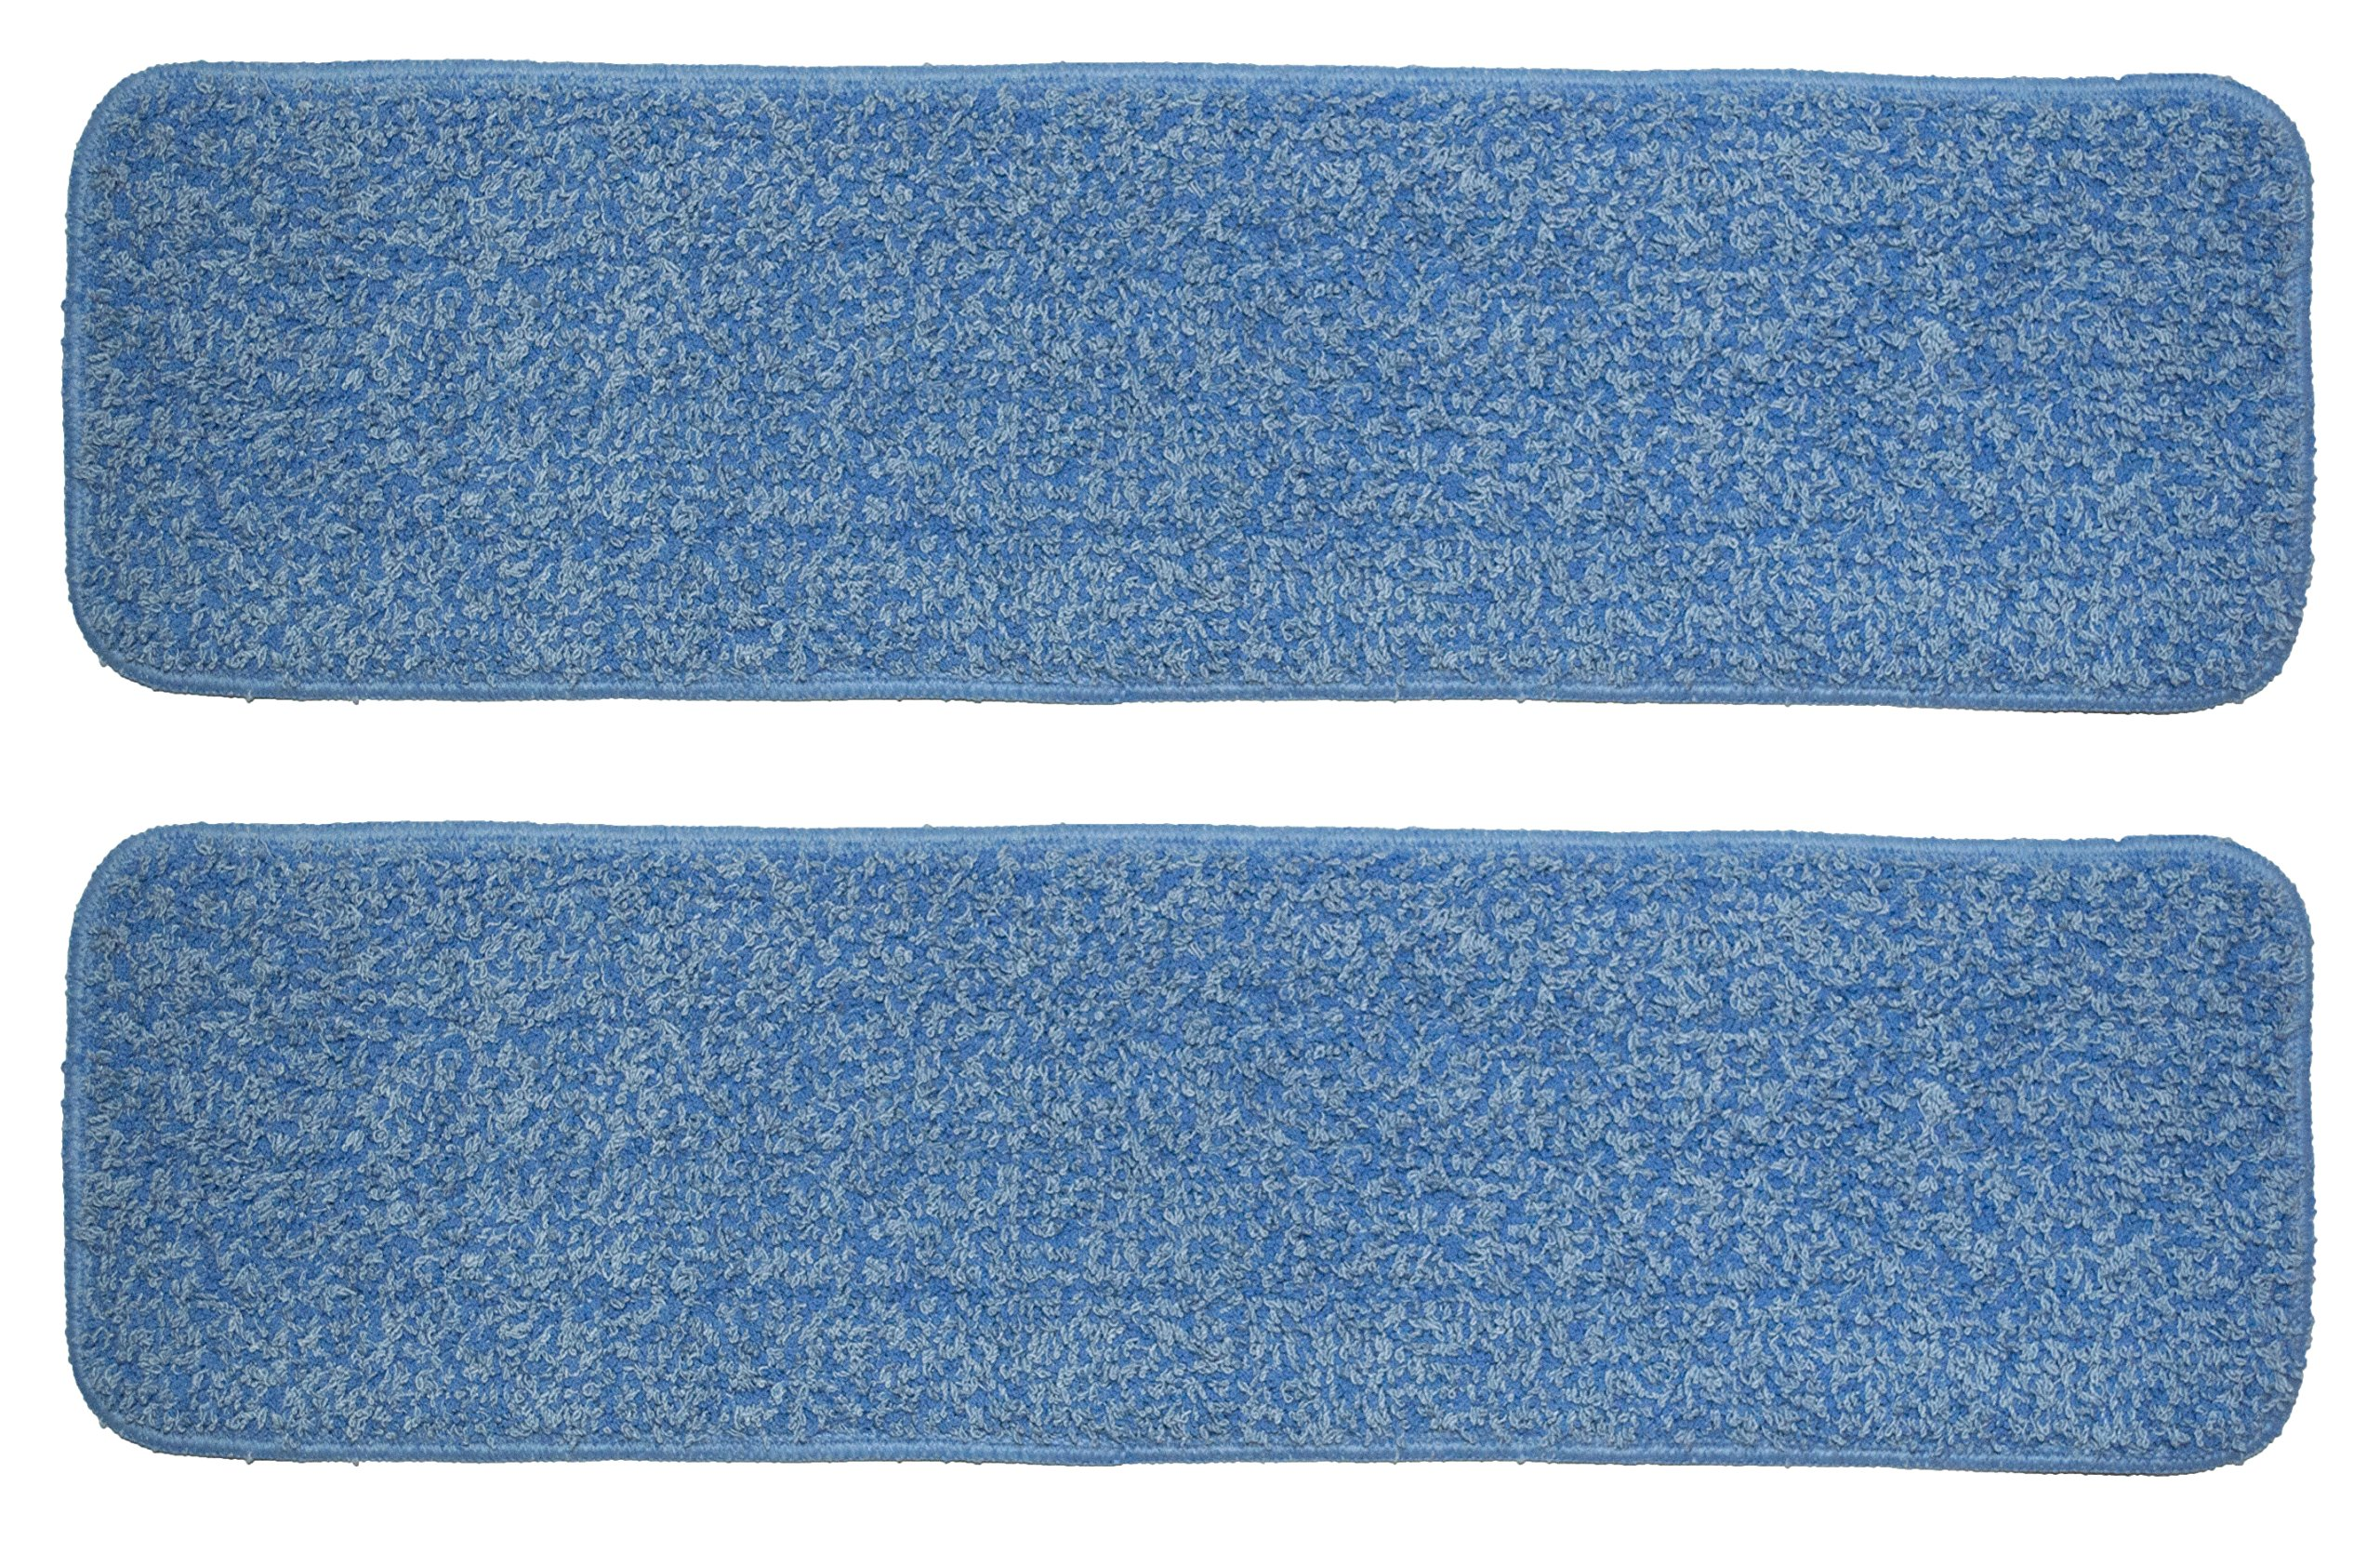 Nine Forty 36 Inch Microfiber Wet or Dry Flat Hardwood Floor Dust Mop Head Refill | Replacement Pads | Washable Industrial Commercial Supplies (2 Pack) by Nine Forty